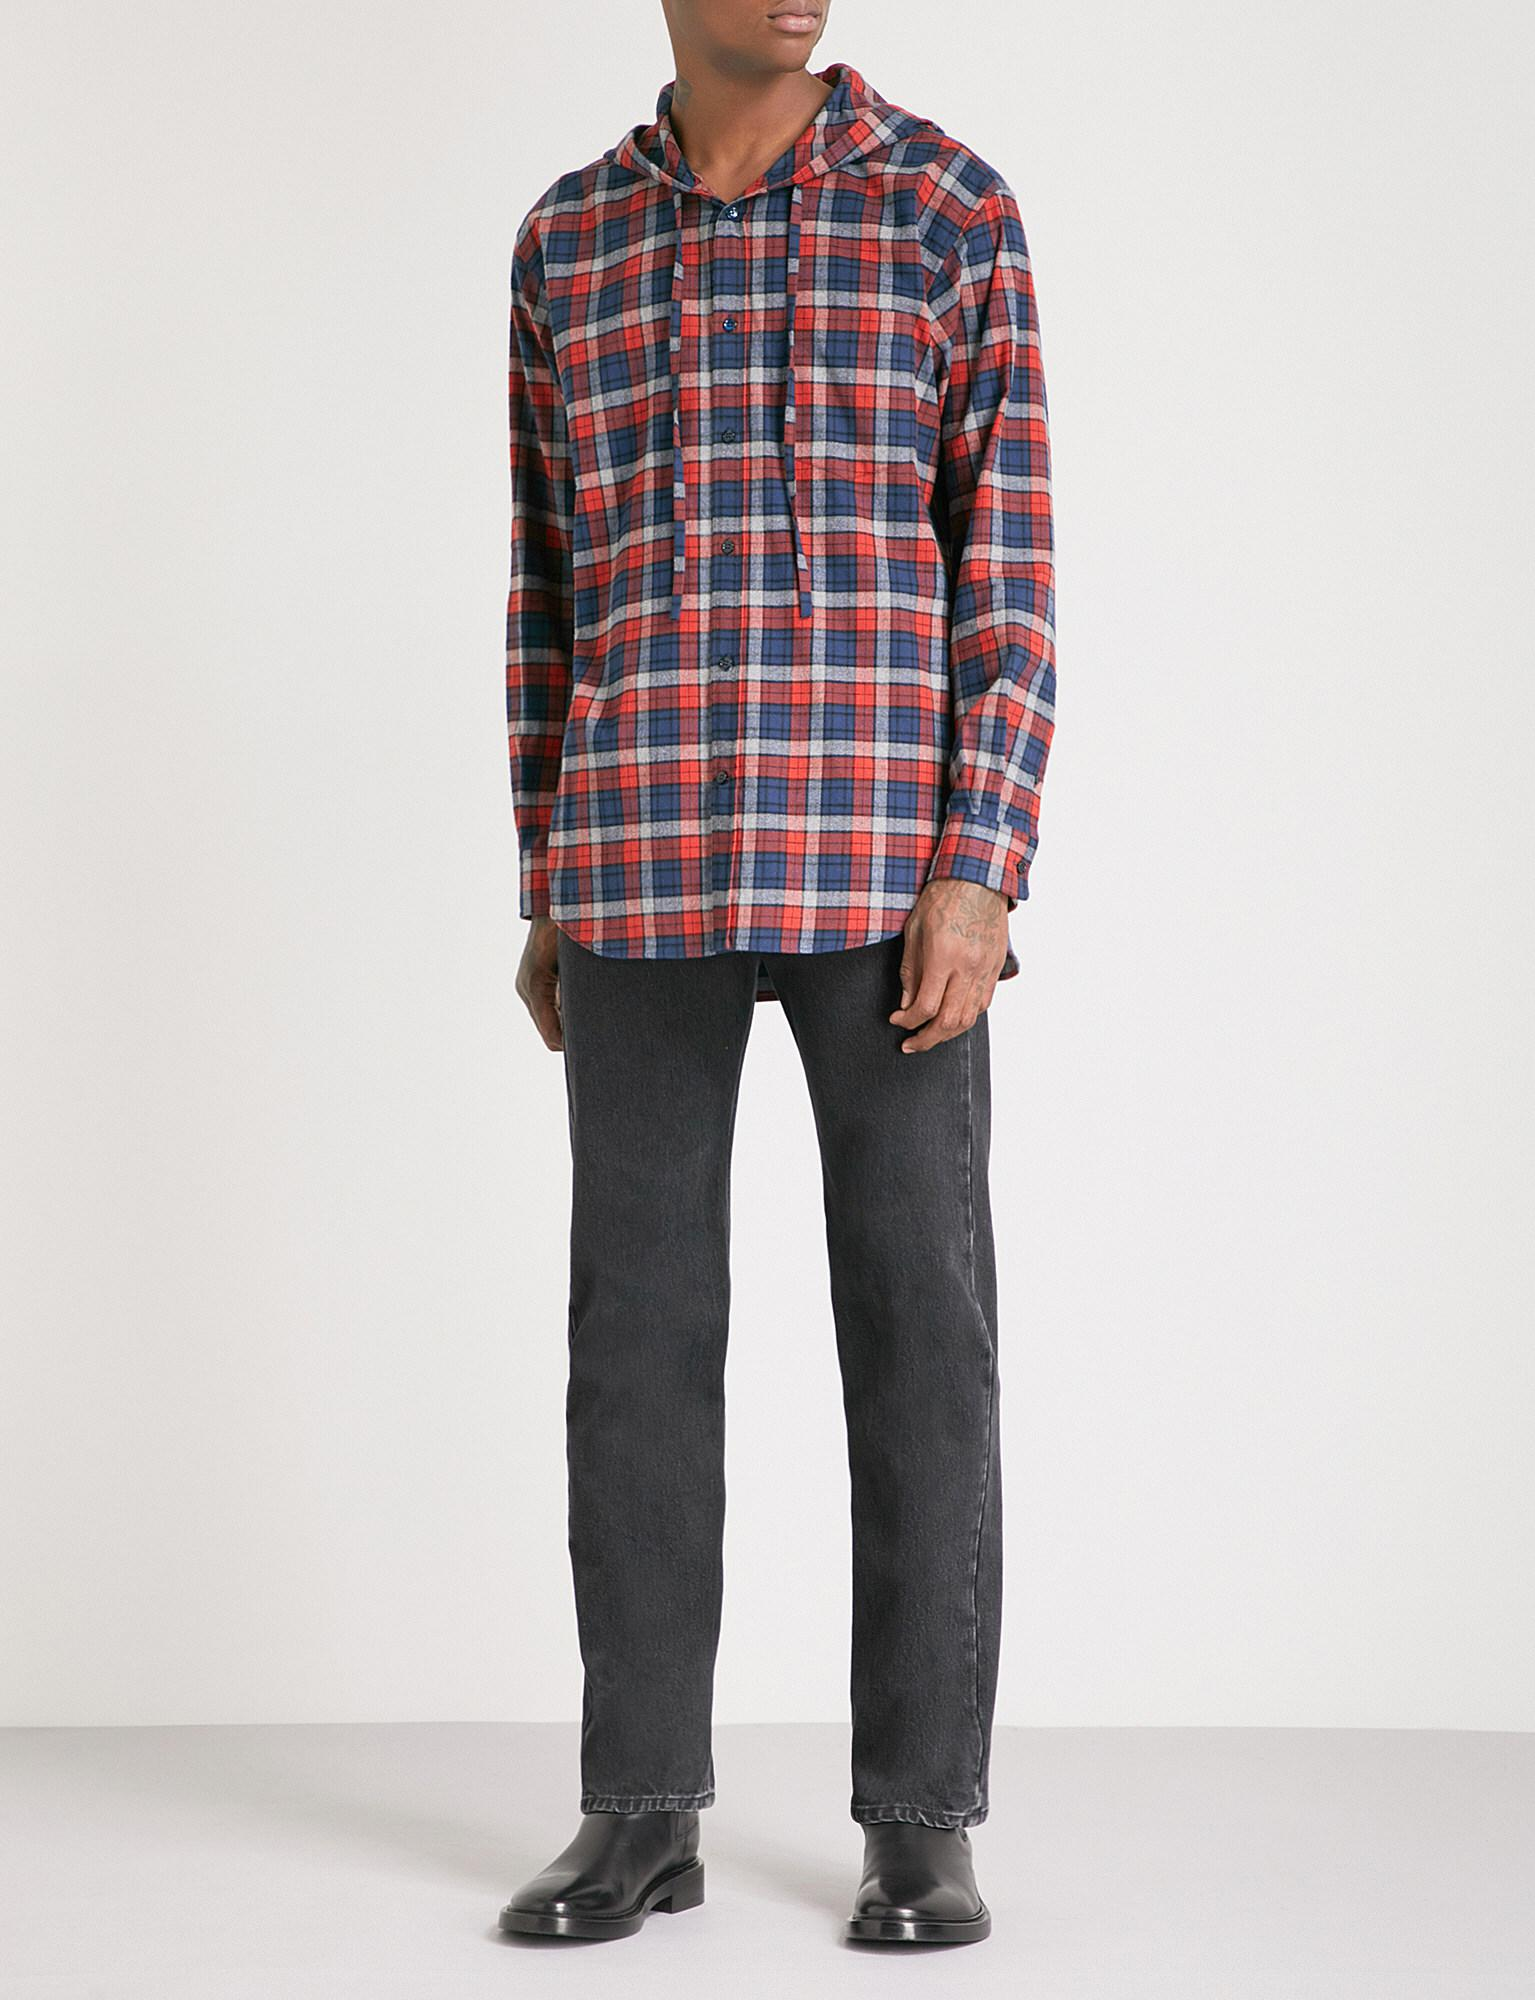 5c968acc Balenciaga Hooded Checked Regular-fit Flannel Shirt for Men - Lyst